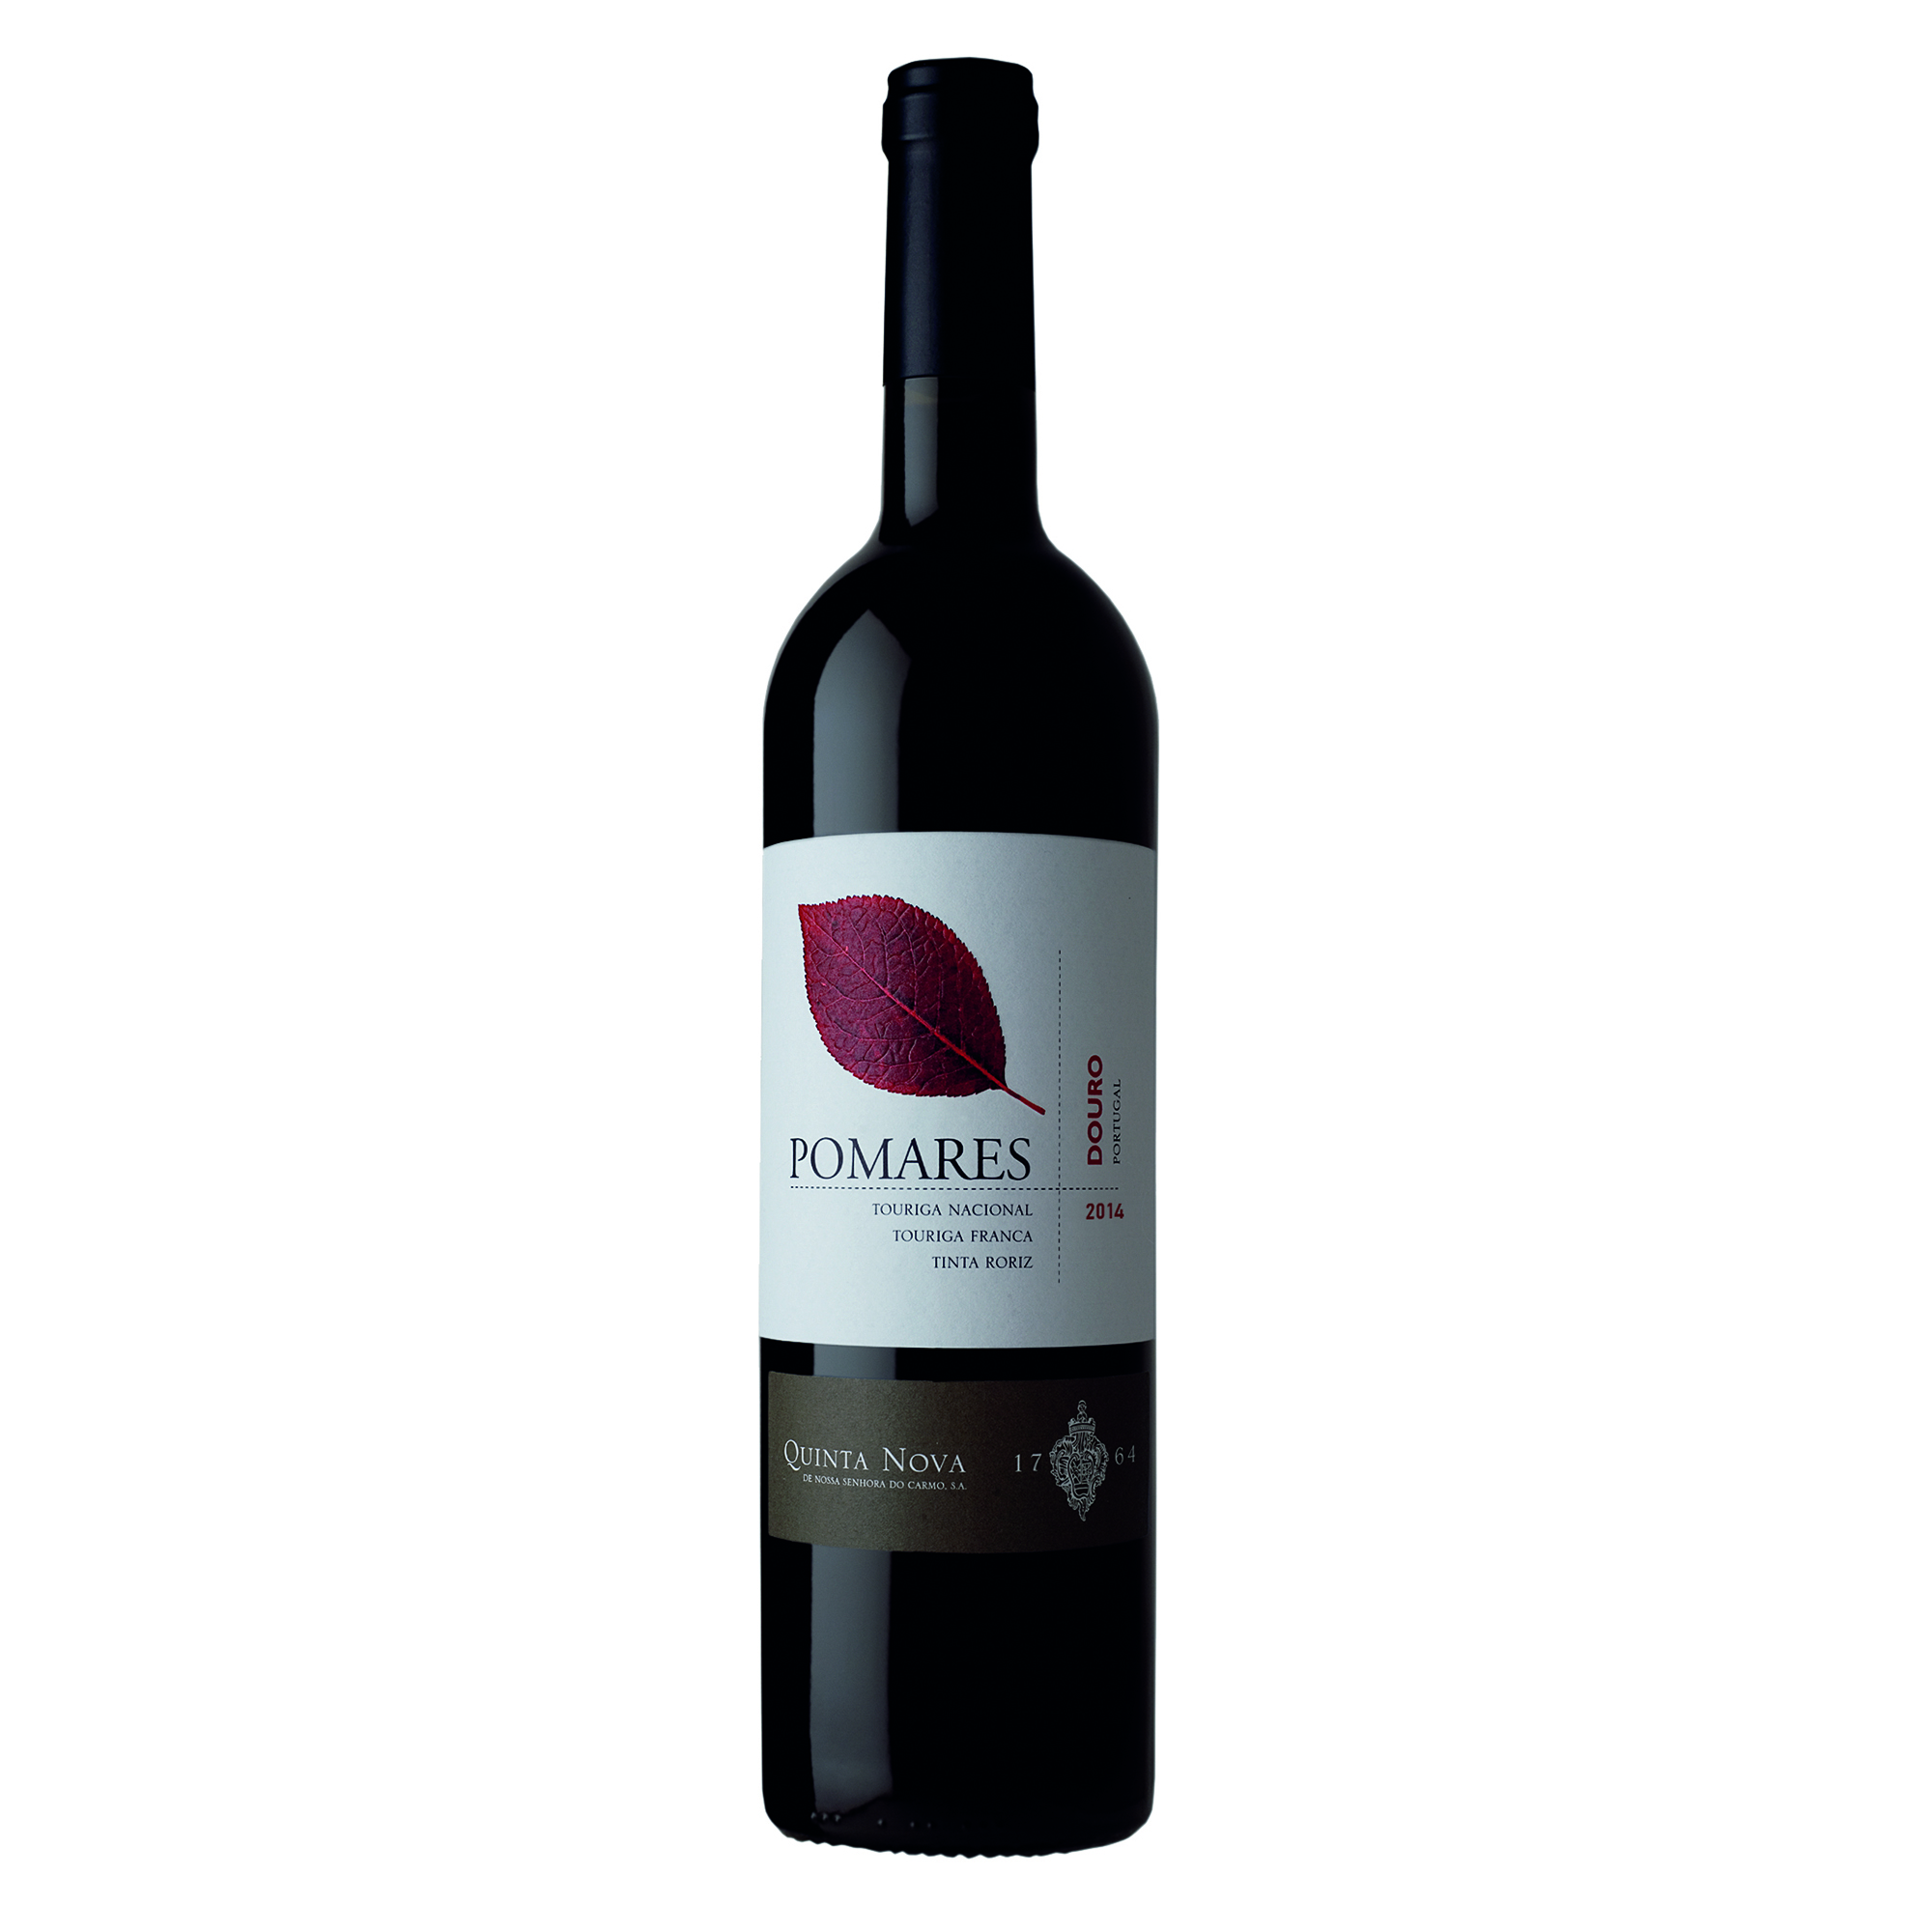 POMARES RED 2014